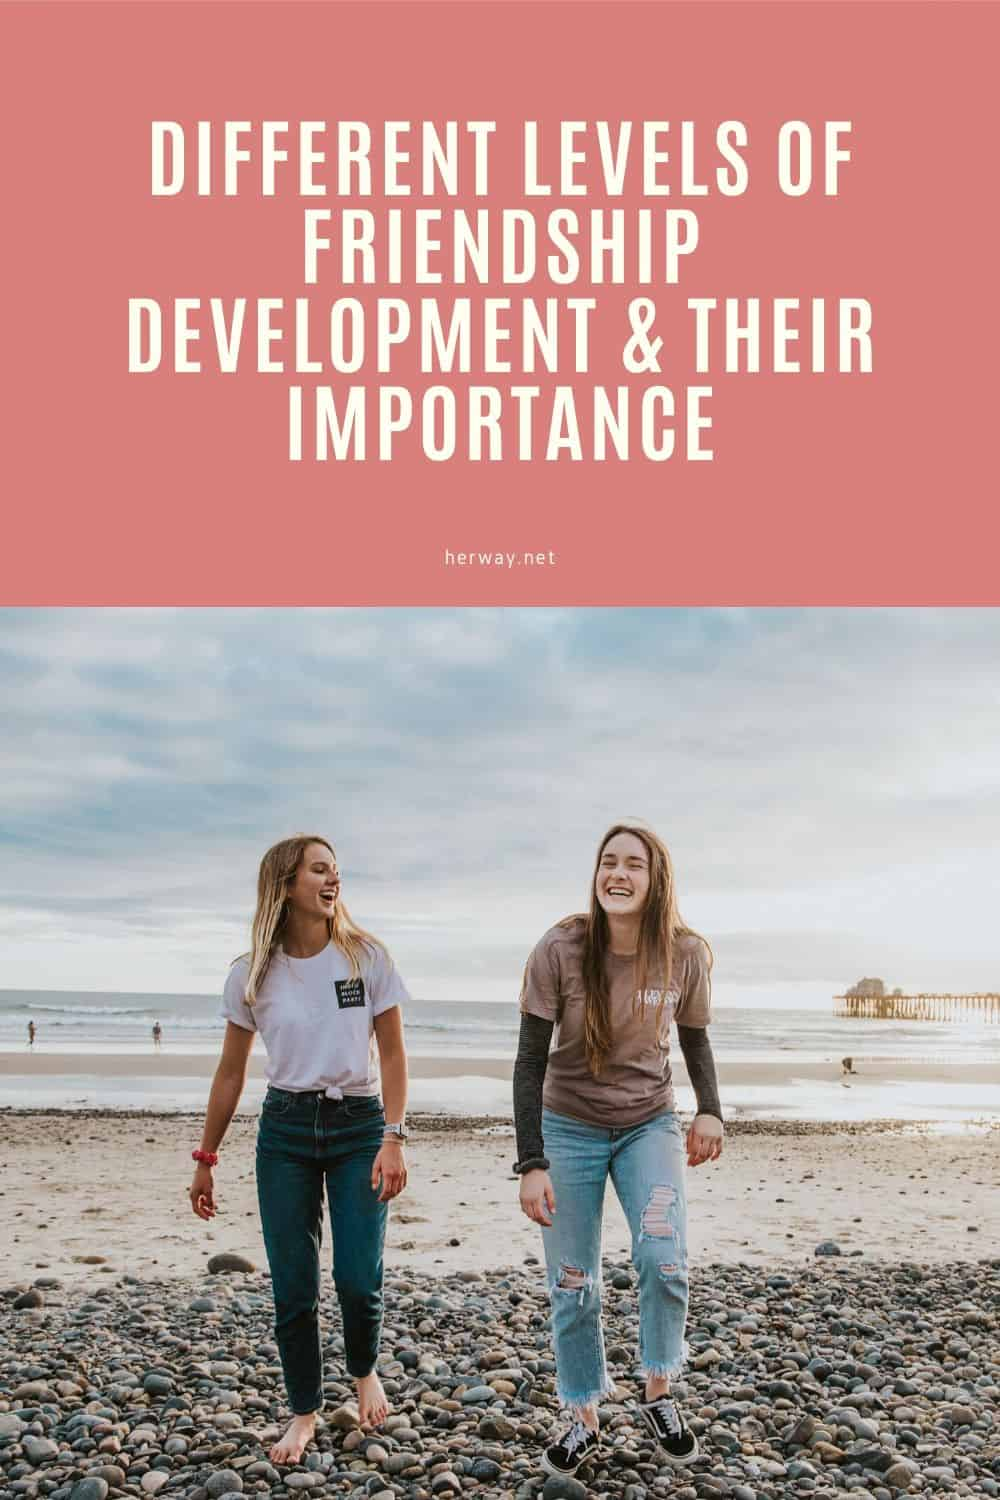 Different Levels Of Friendship Development & Their Importance